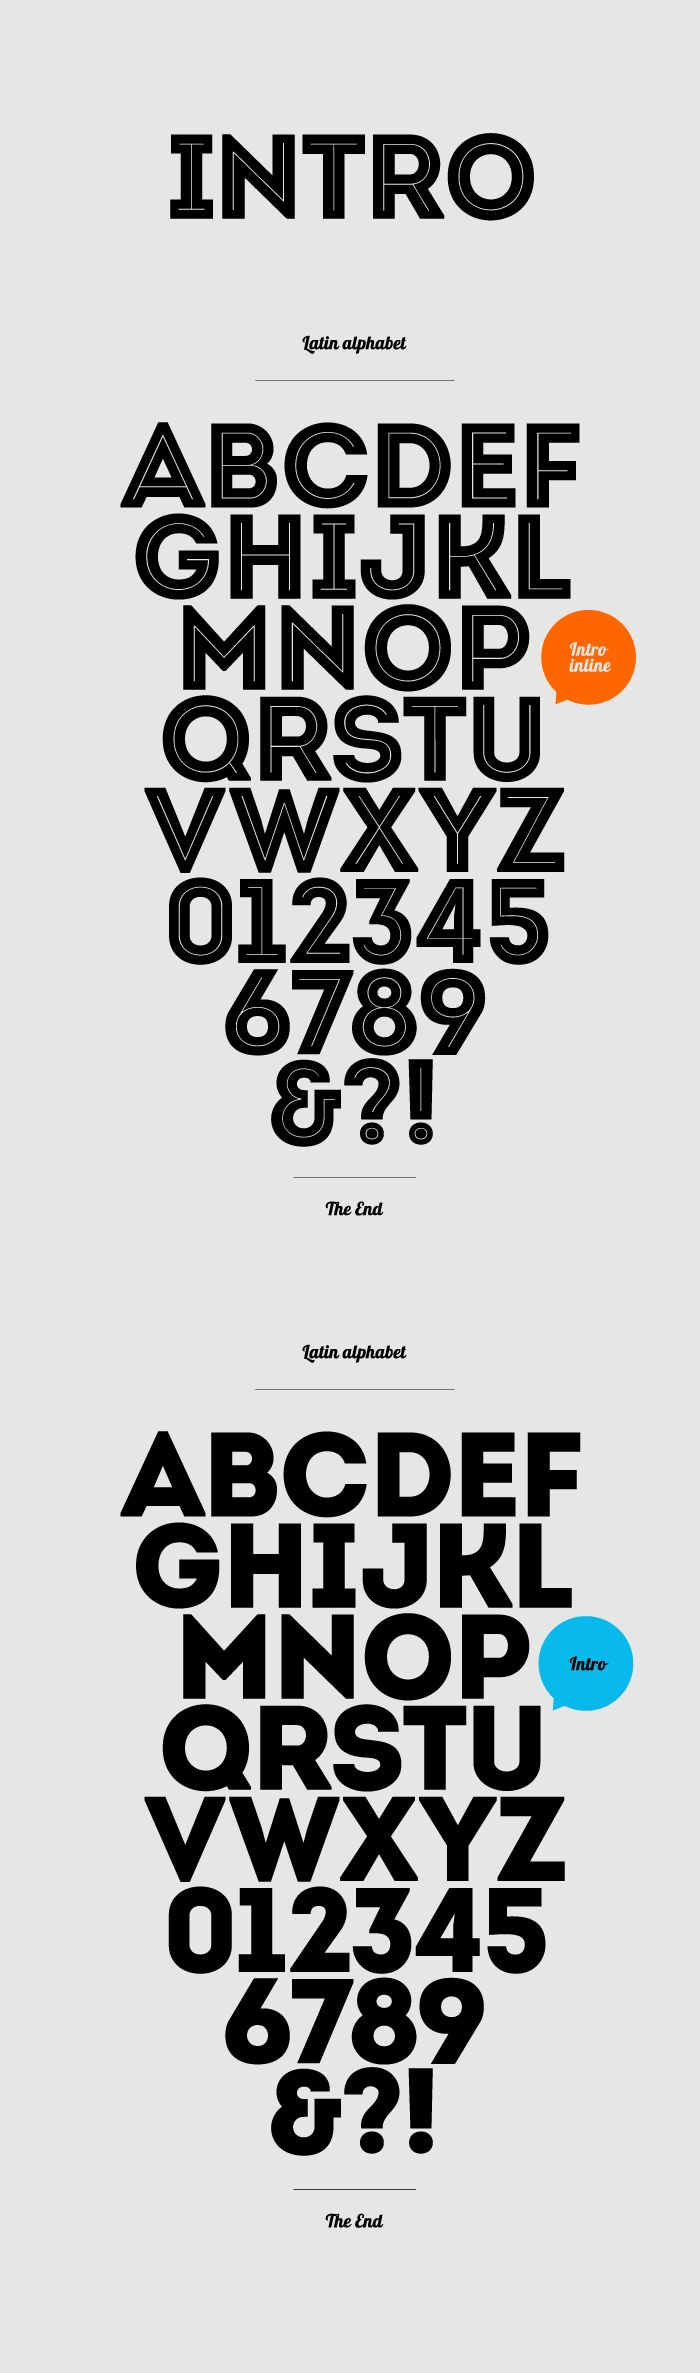 """Intro -- Free font -- Strongly expressed geometric makeup and structure. The basic letters like """"A"""", """"O"""" and """"H"""" are built or based on principles of simple geometric forms – triangles, circles and squares. In contrast to the Futura font which possesses similar styling, the Intro font preserves the characteristic sharpened edges of the """"А"""", """"V"""" and """"W"""" letters even in it's boldened form."""